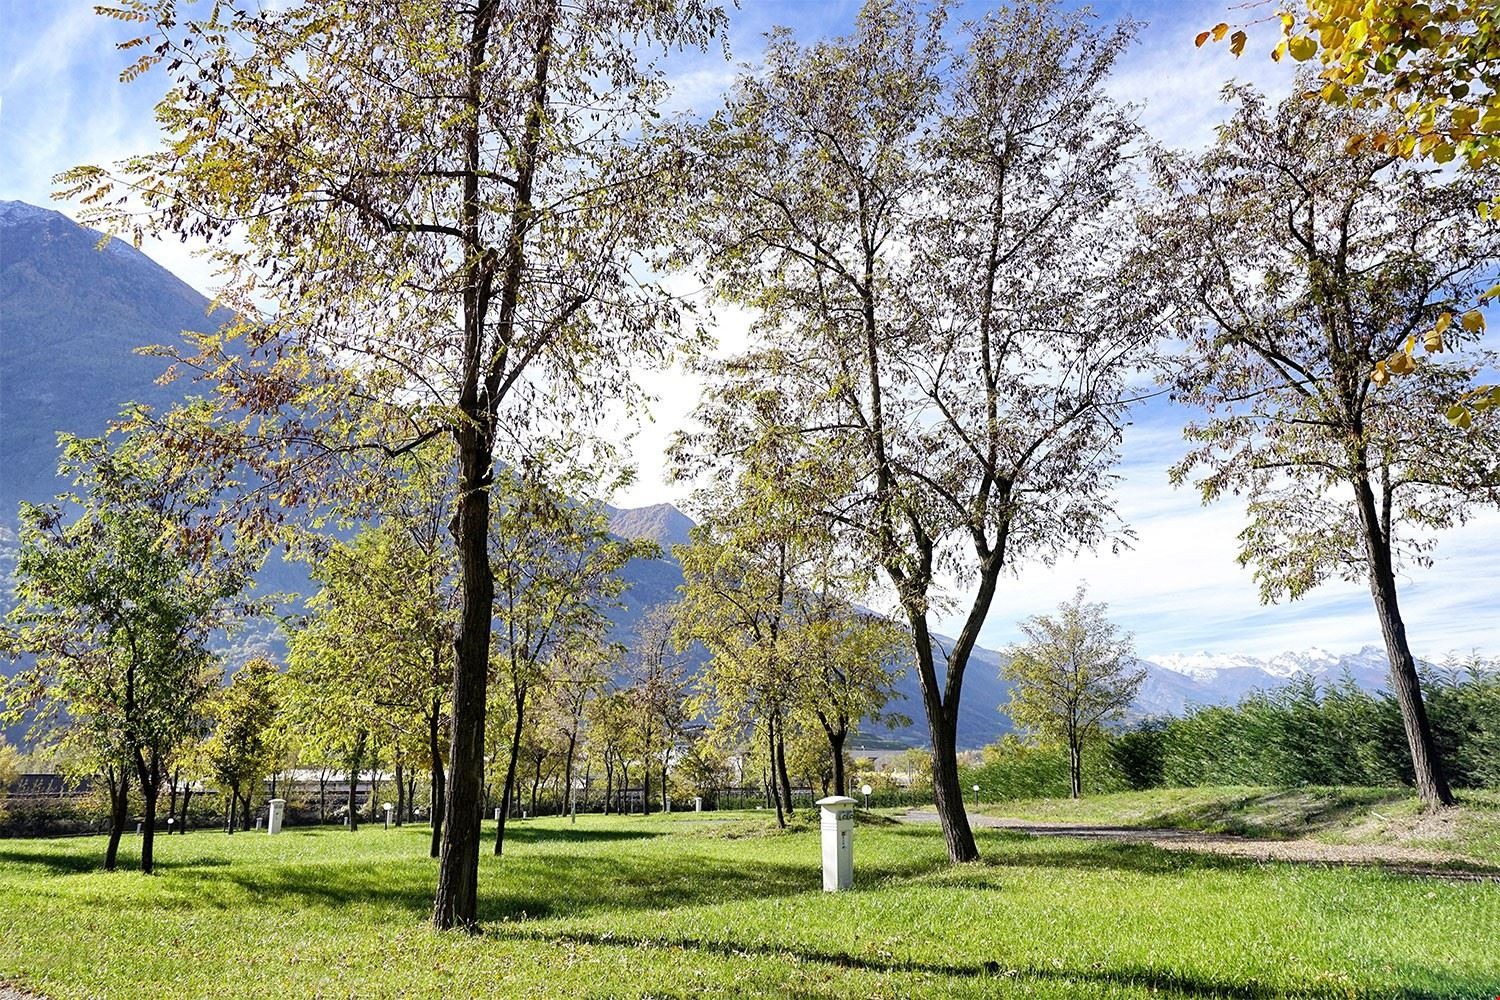 Camping in Valle d'Aosta